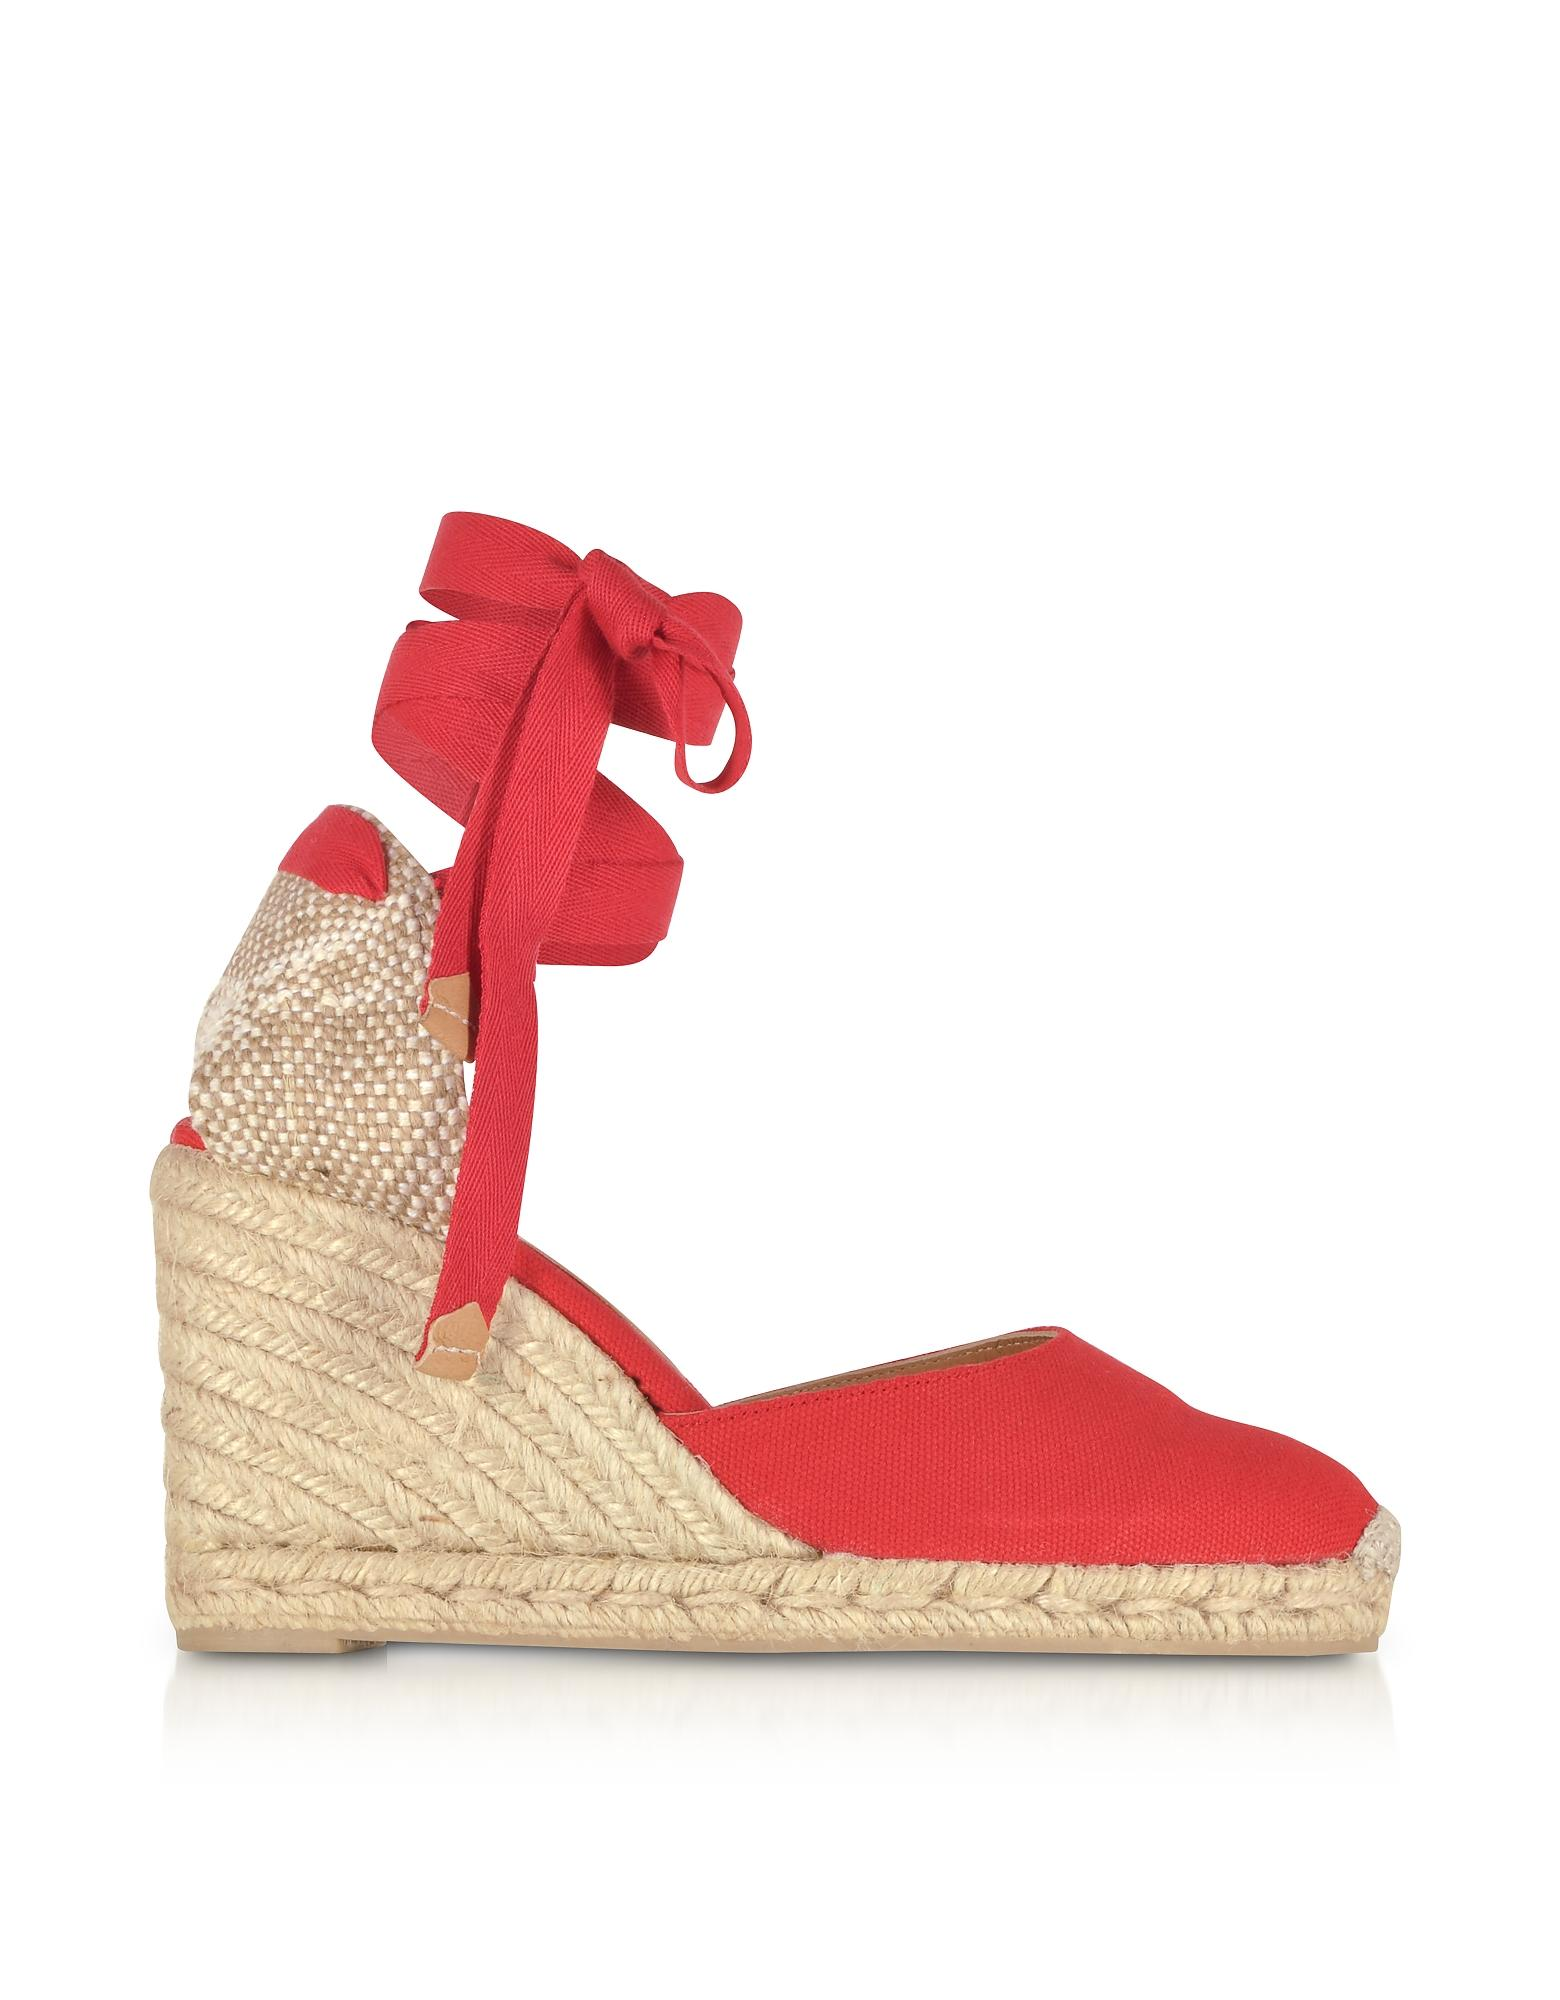 66cbe5a26 Castaner Carina Ruby Red Canvas Wedge Espadrilles in Red - Lyst